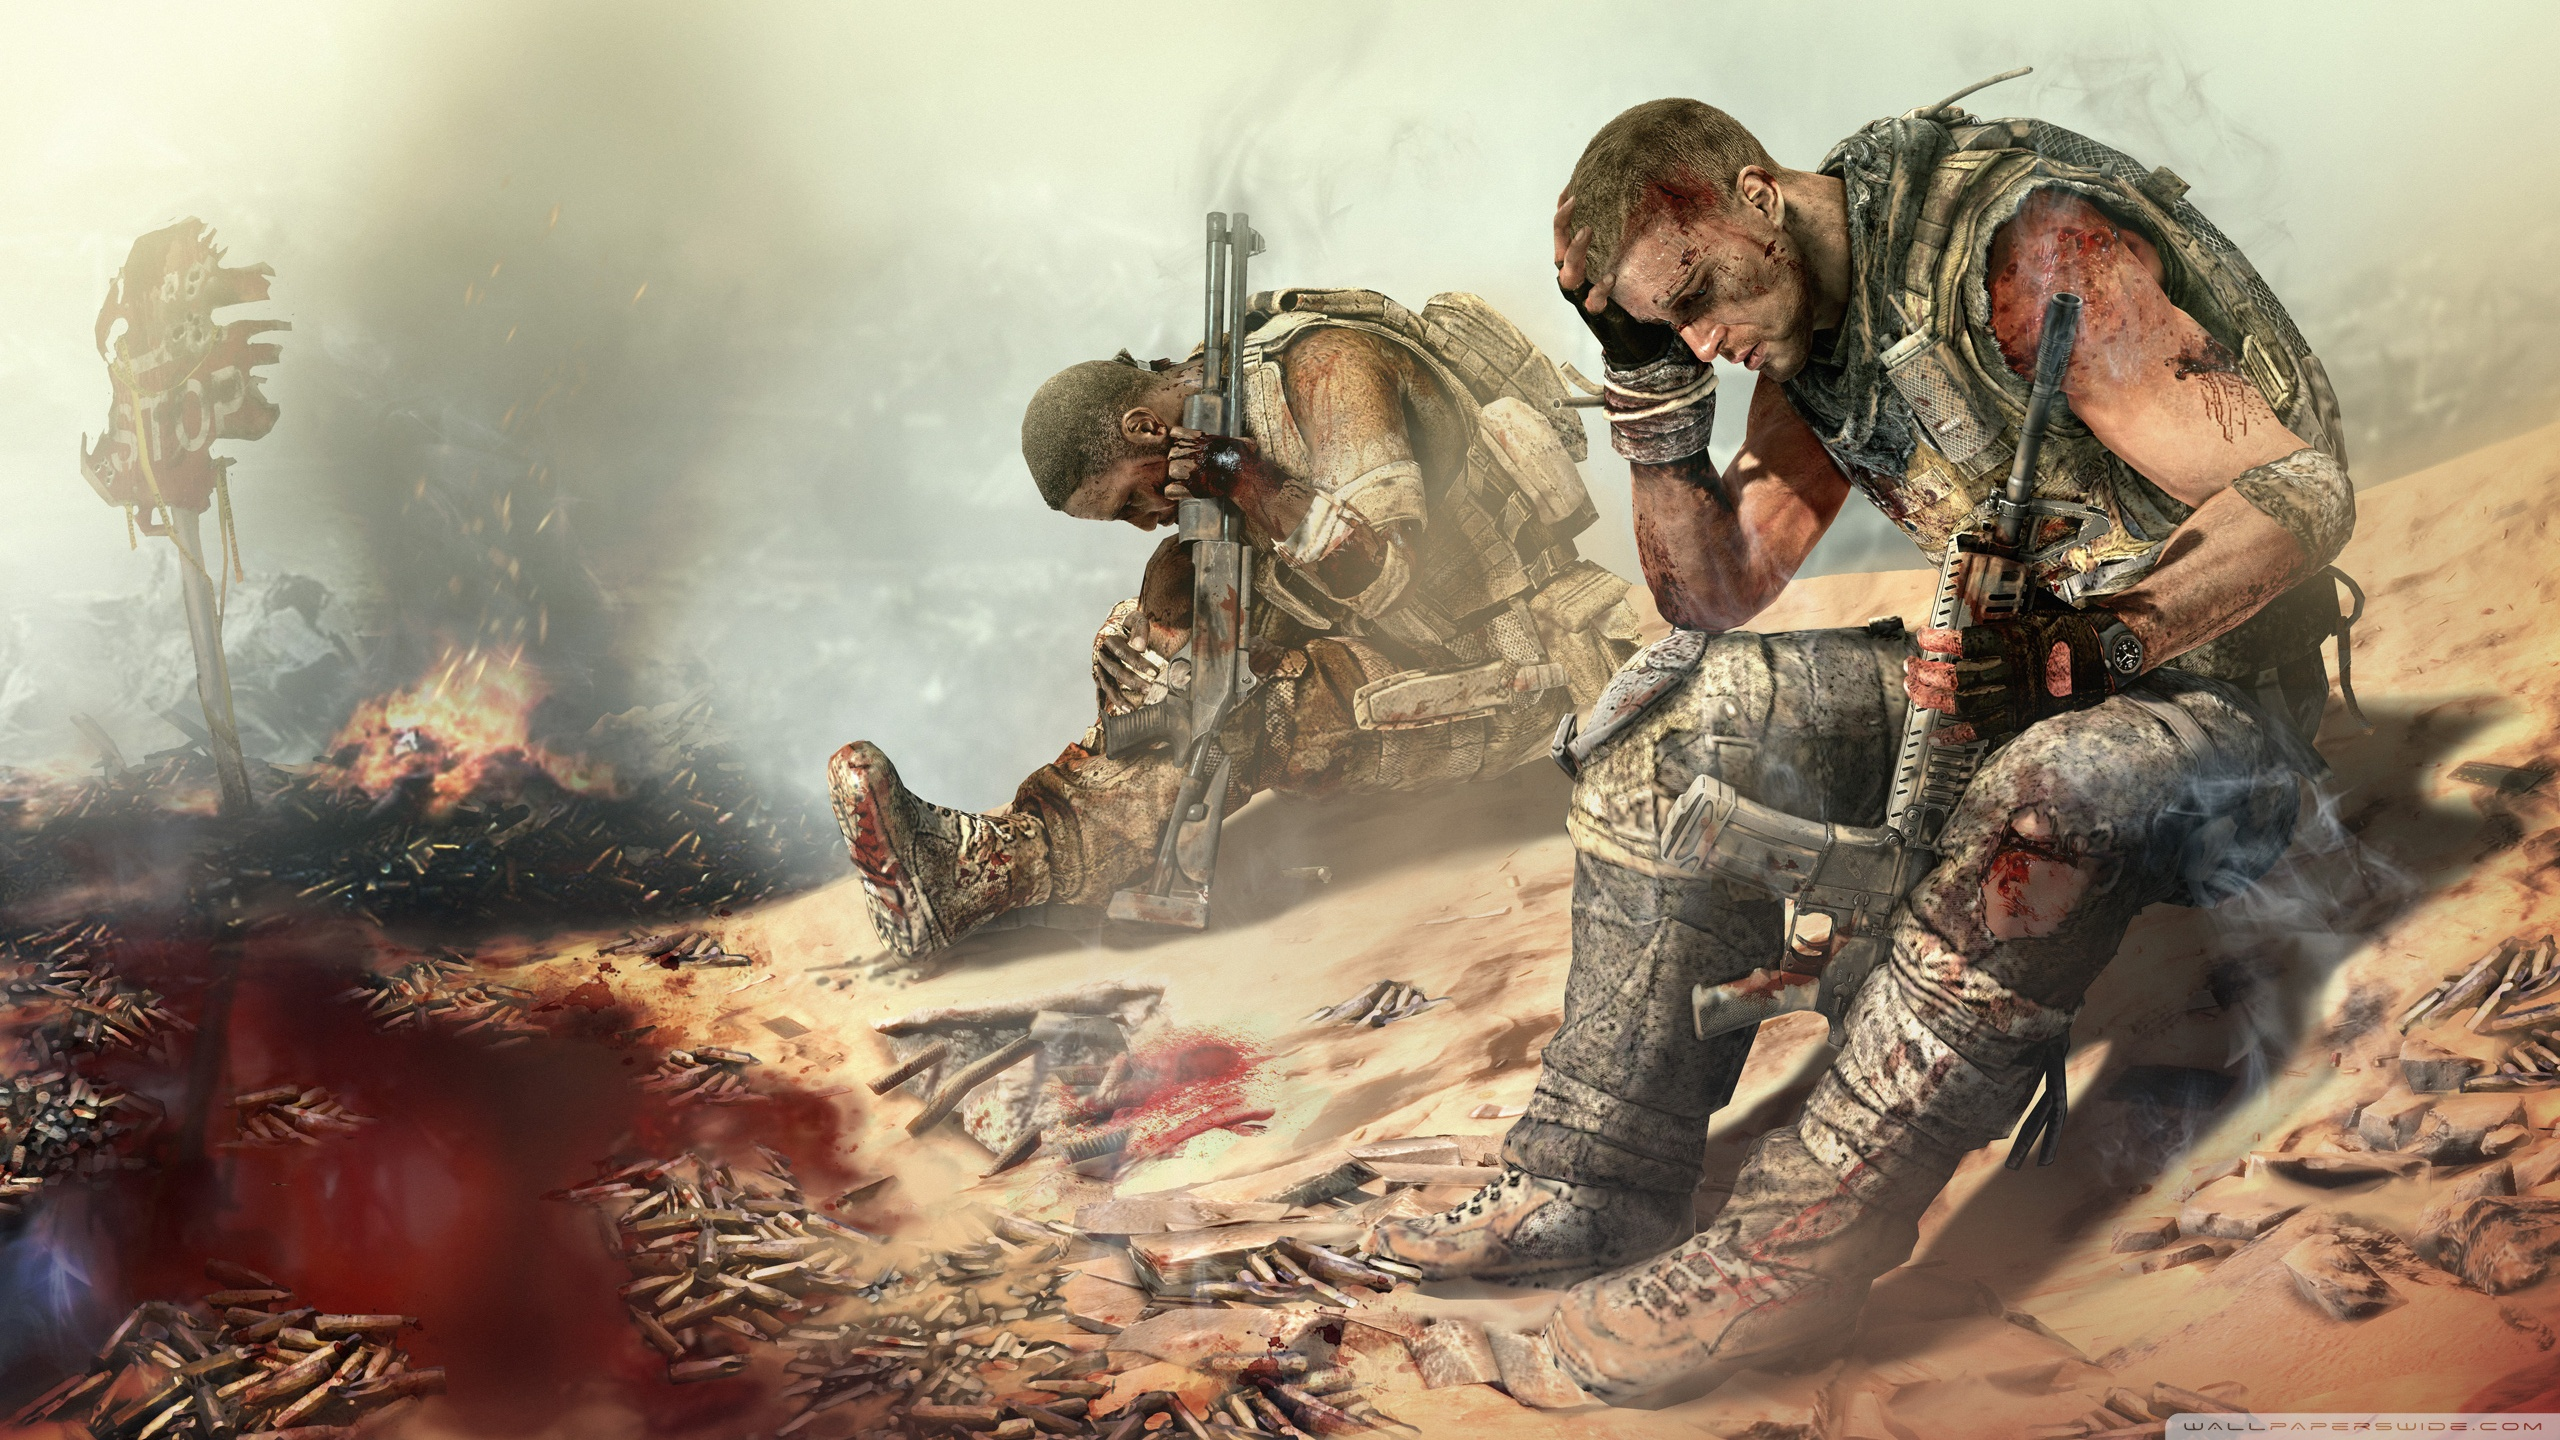 spec_ops__the_line-wallpaper-2560×1440